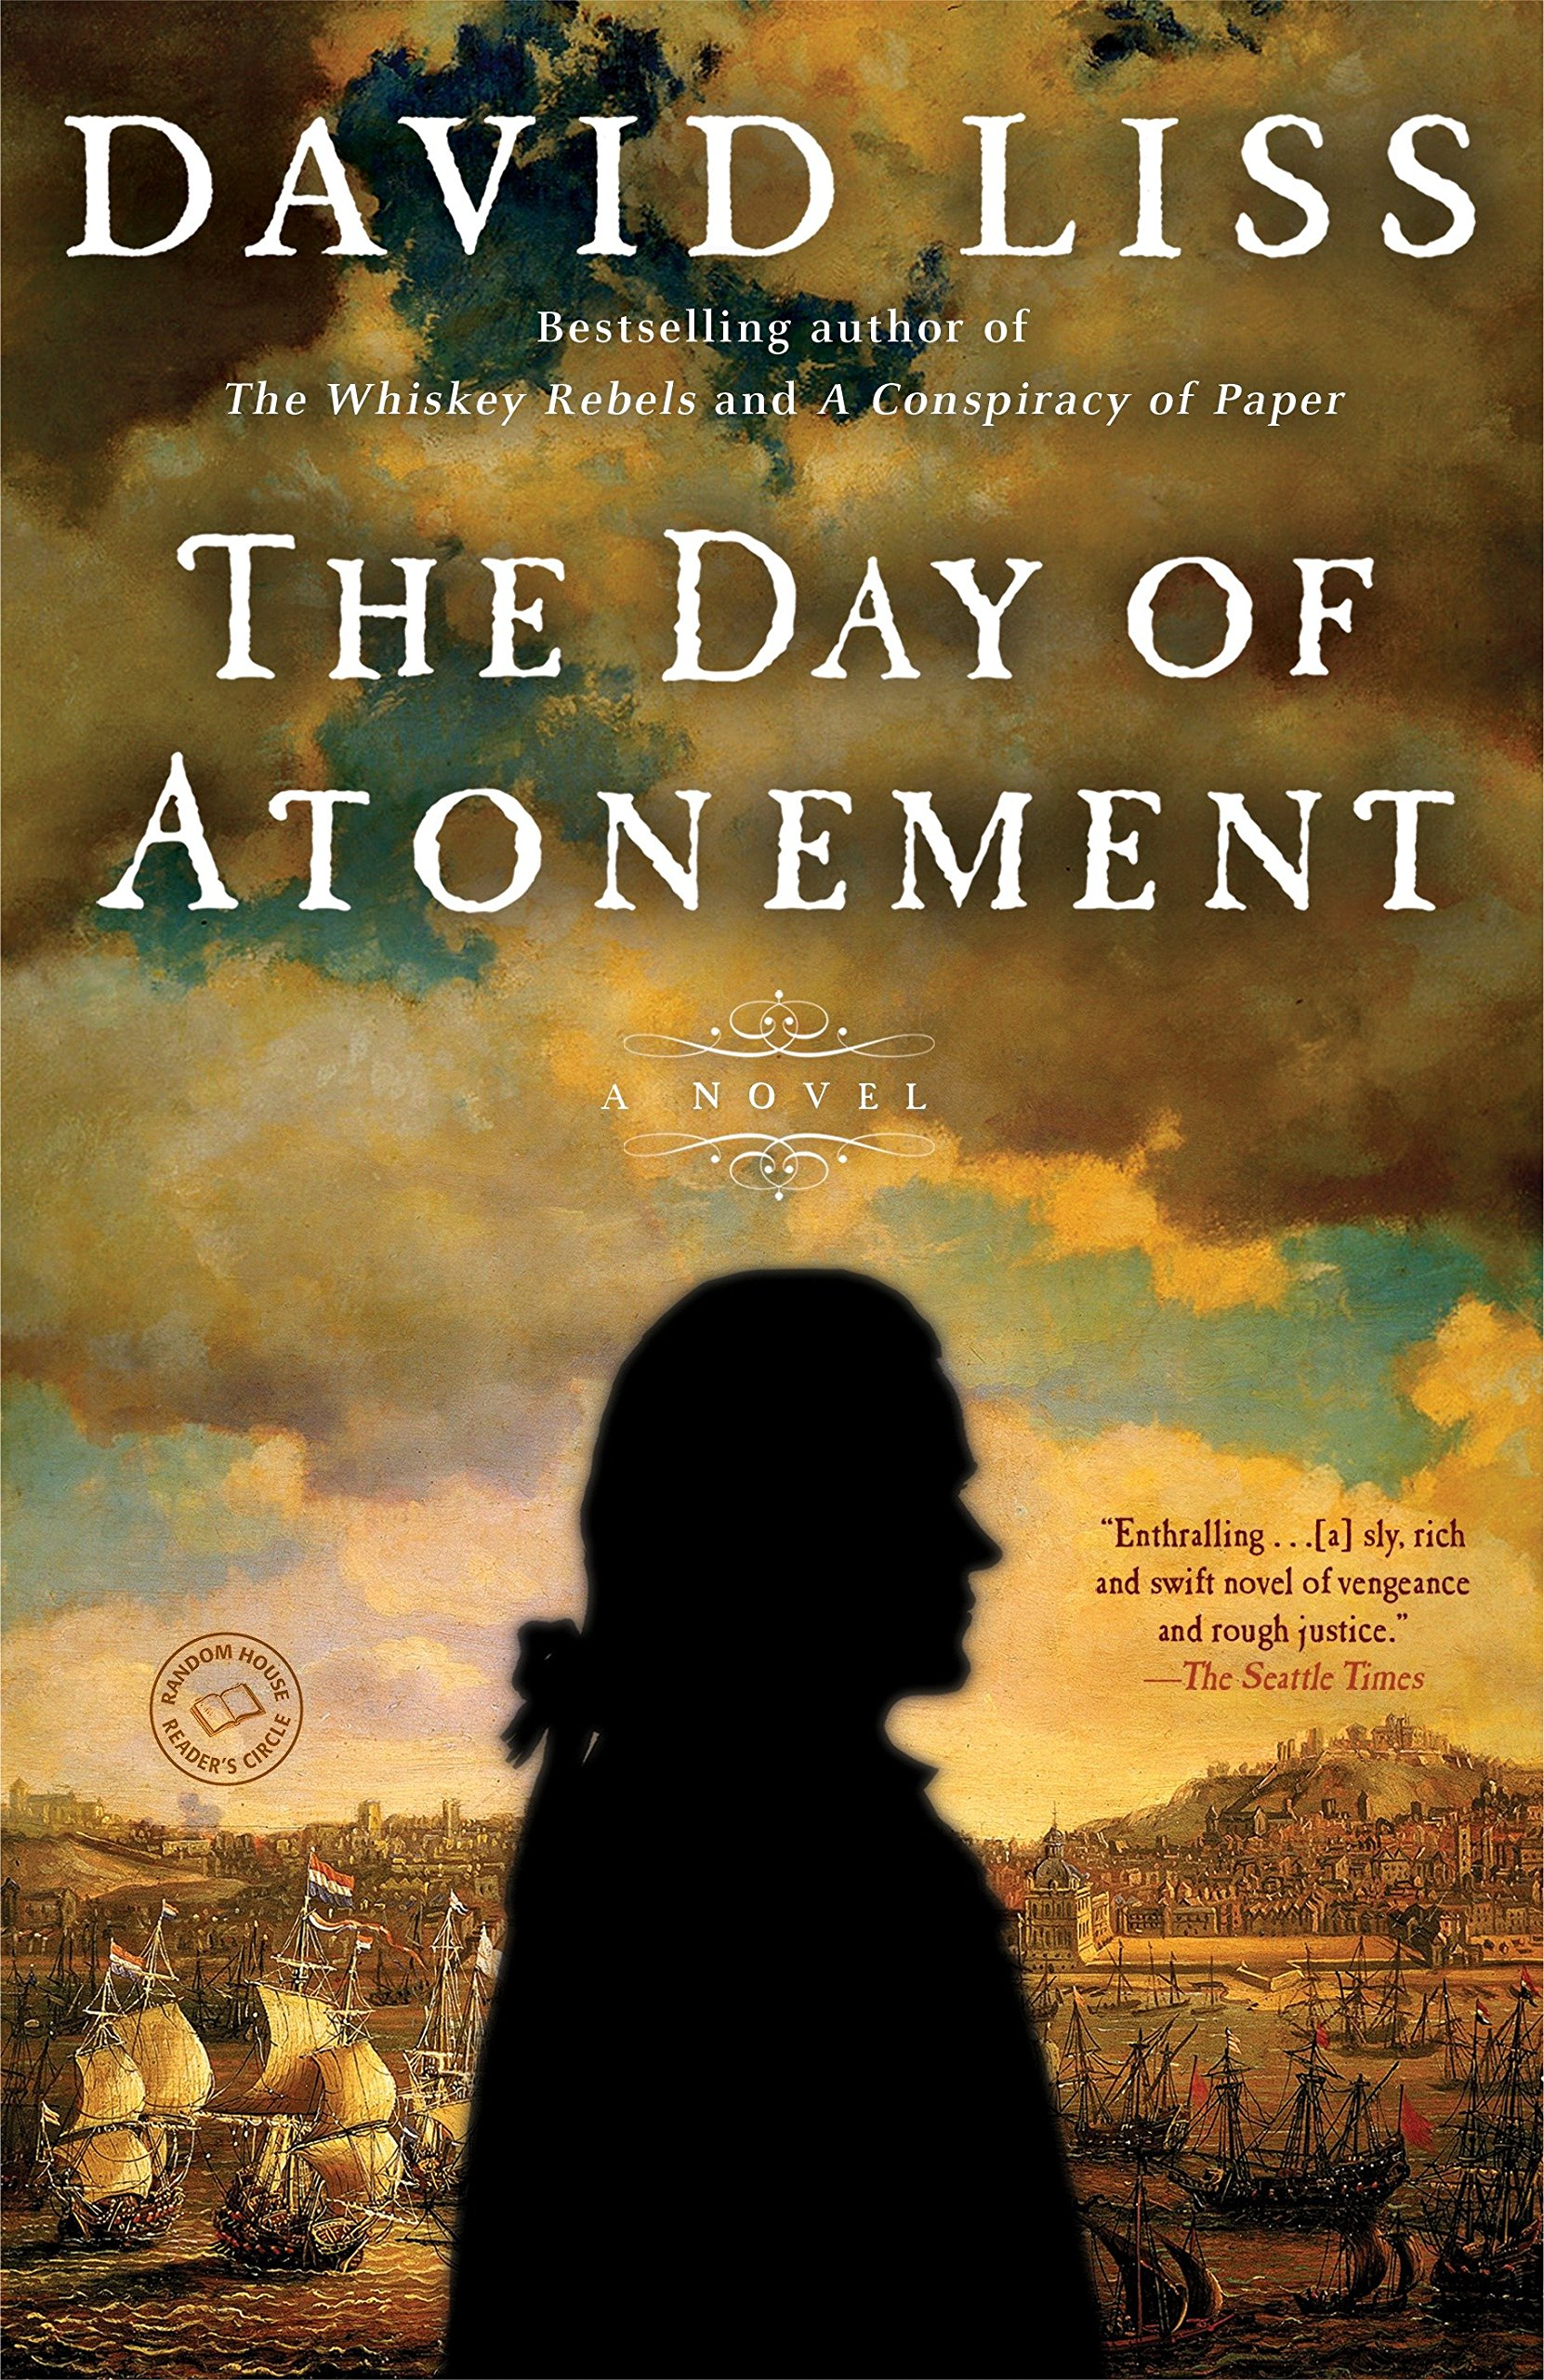 The Day of Atonement: A Novel (Benjamin Weaver) PDF